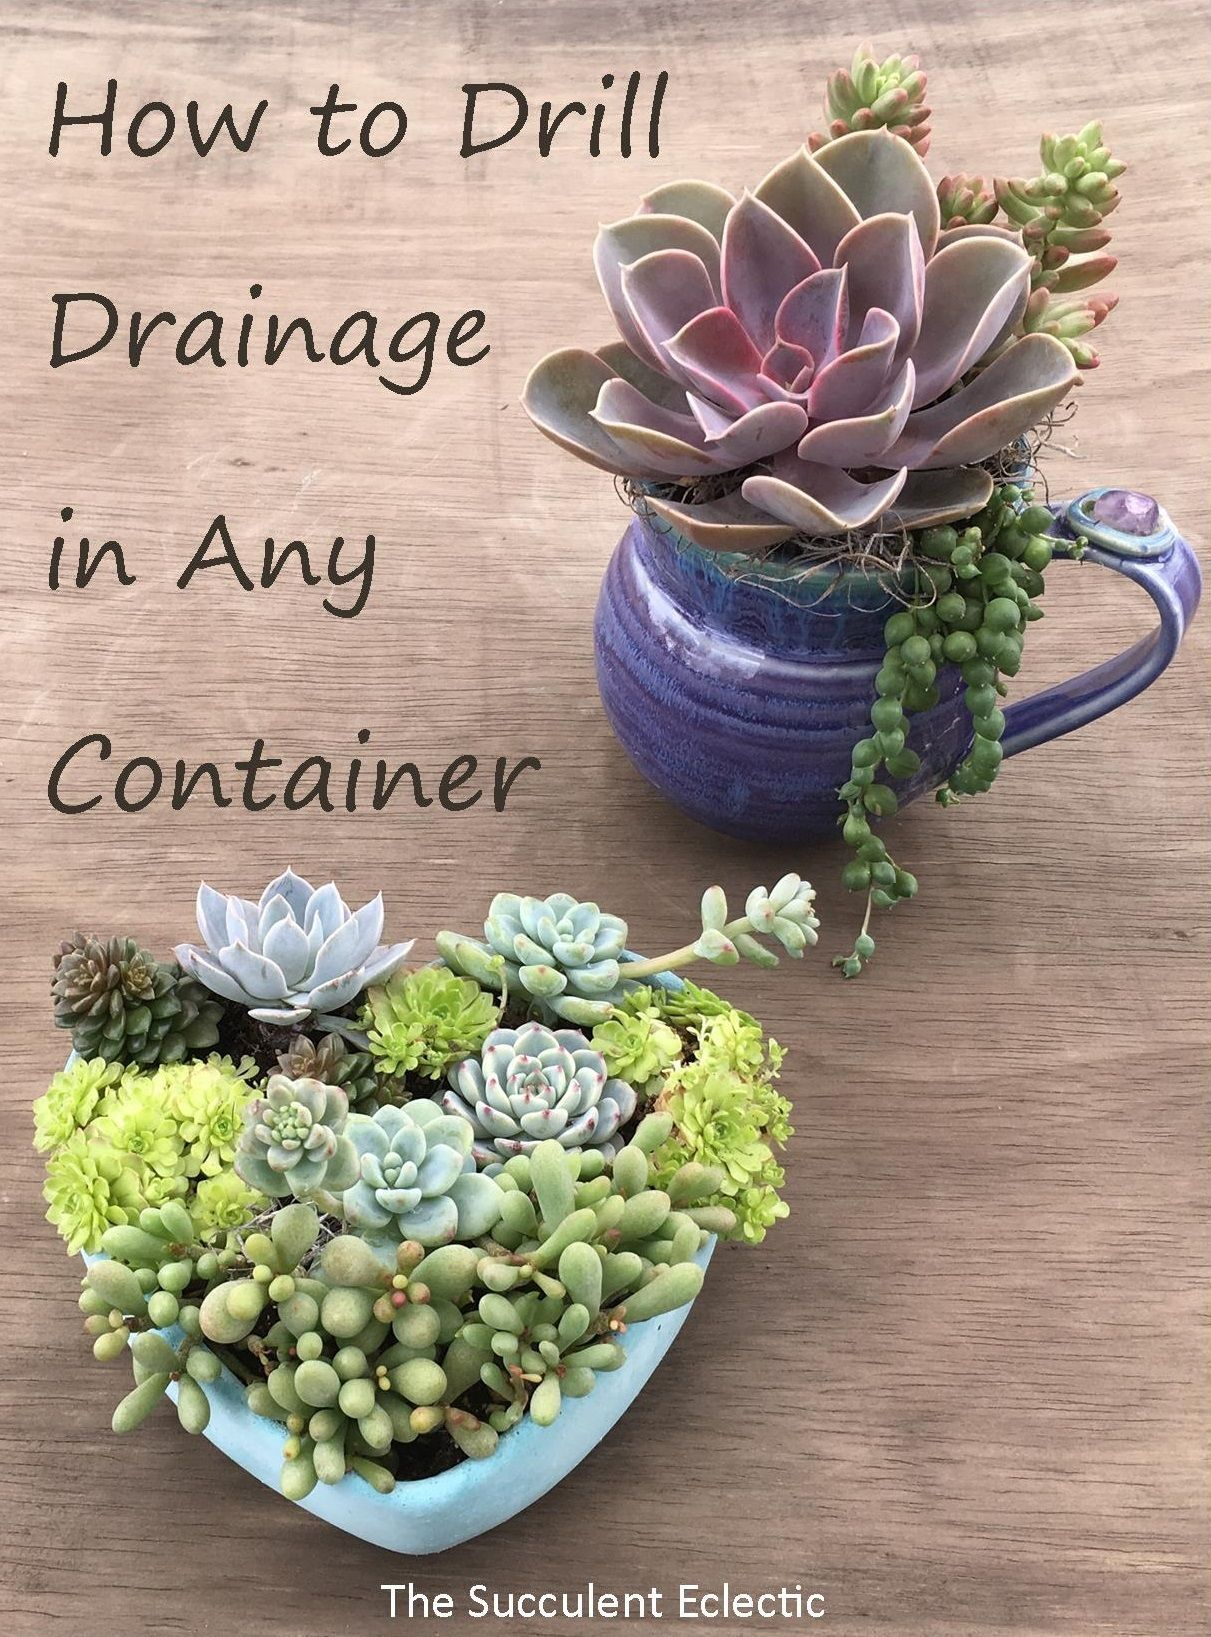 Planting Succulents in Containers Without Drainage? Drill Your Own! | The Succulent Eclectic